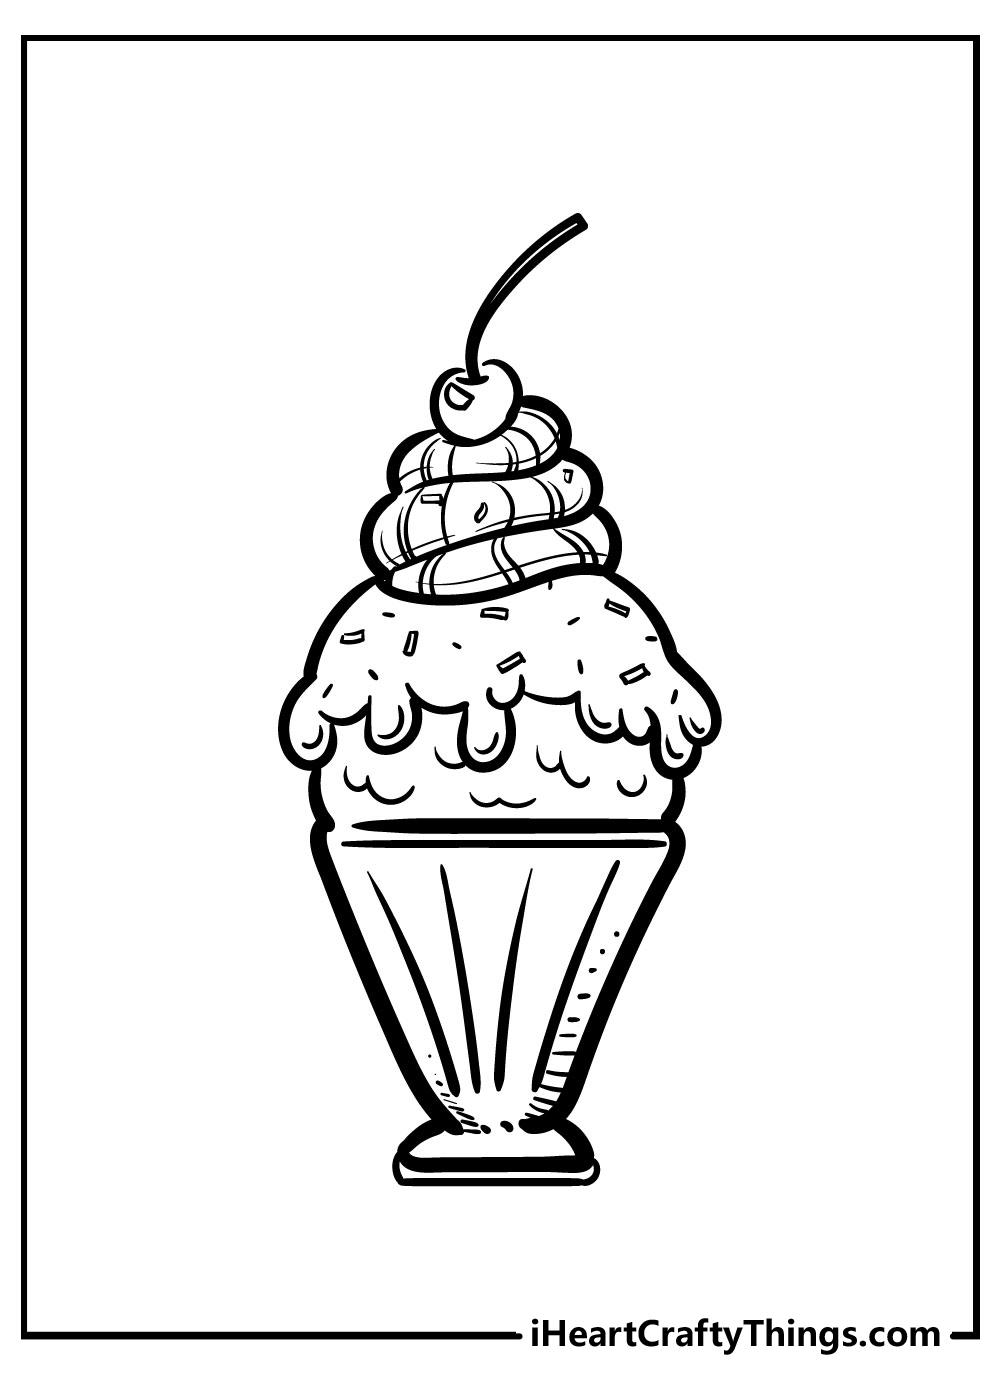 images of soft serve ice cream coloring pages